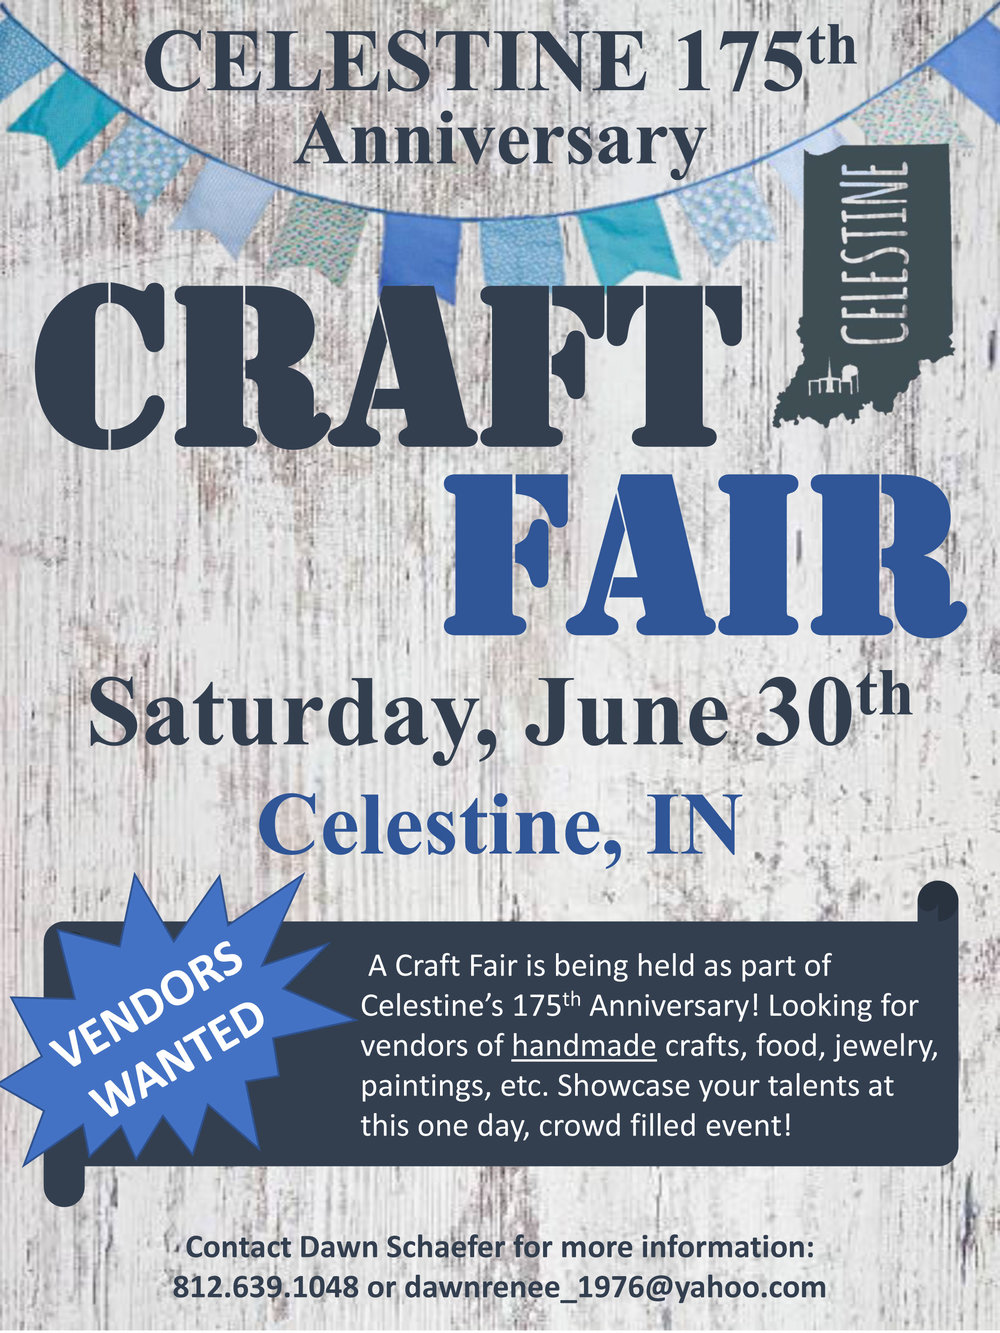 Celestine-SesQ-Craft-Fair2.jpg